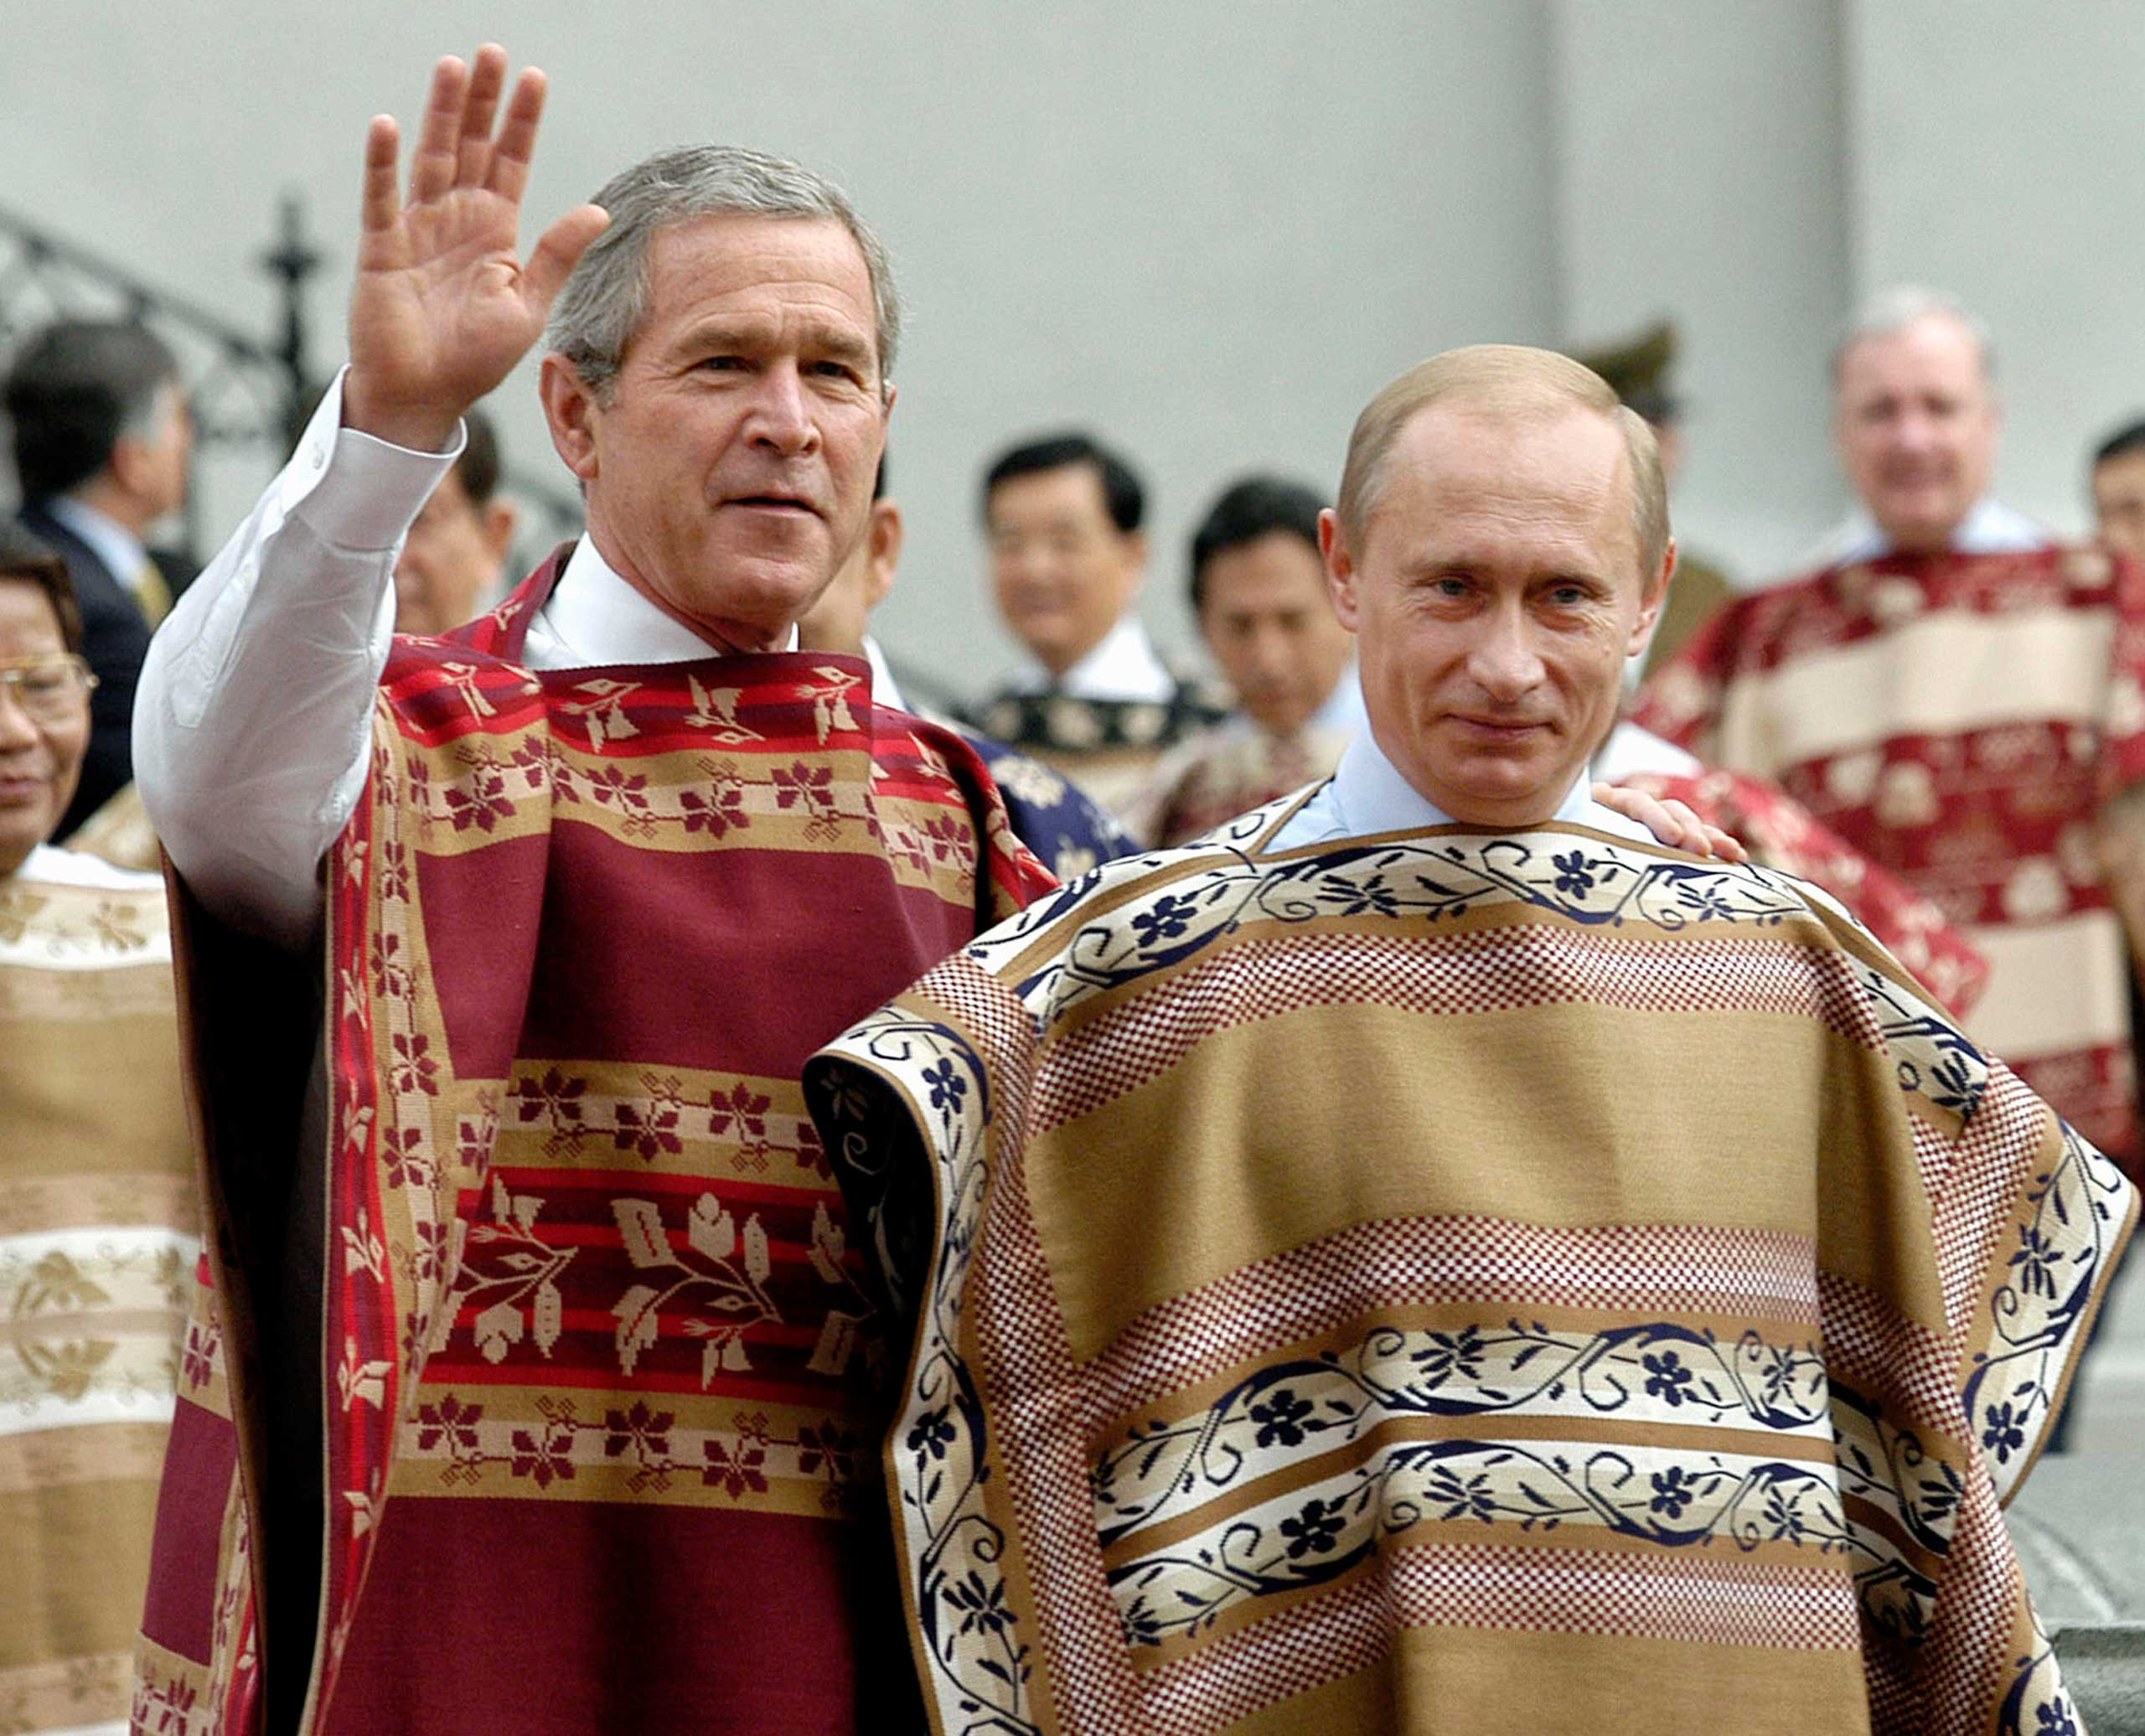 President George W. Bush, left, and Russian President Vladimir Putin, wear traditional Chilean ponchos prior to the leaders' group photo at the 2004 APEC Summit in Santiago, Chile in 2004.